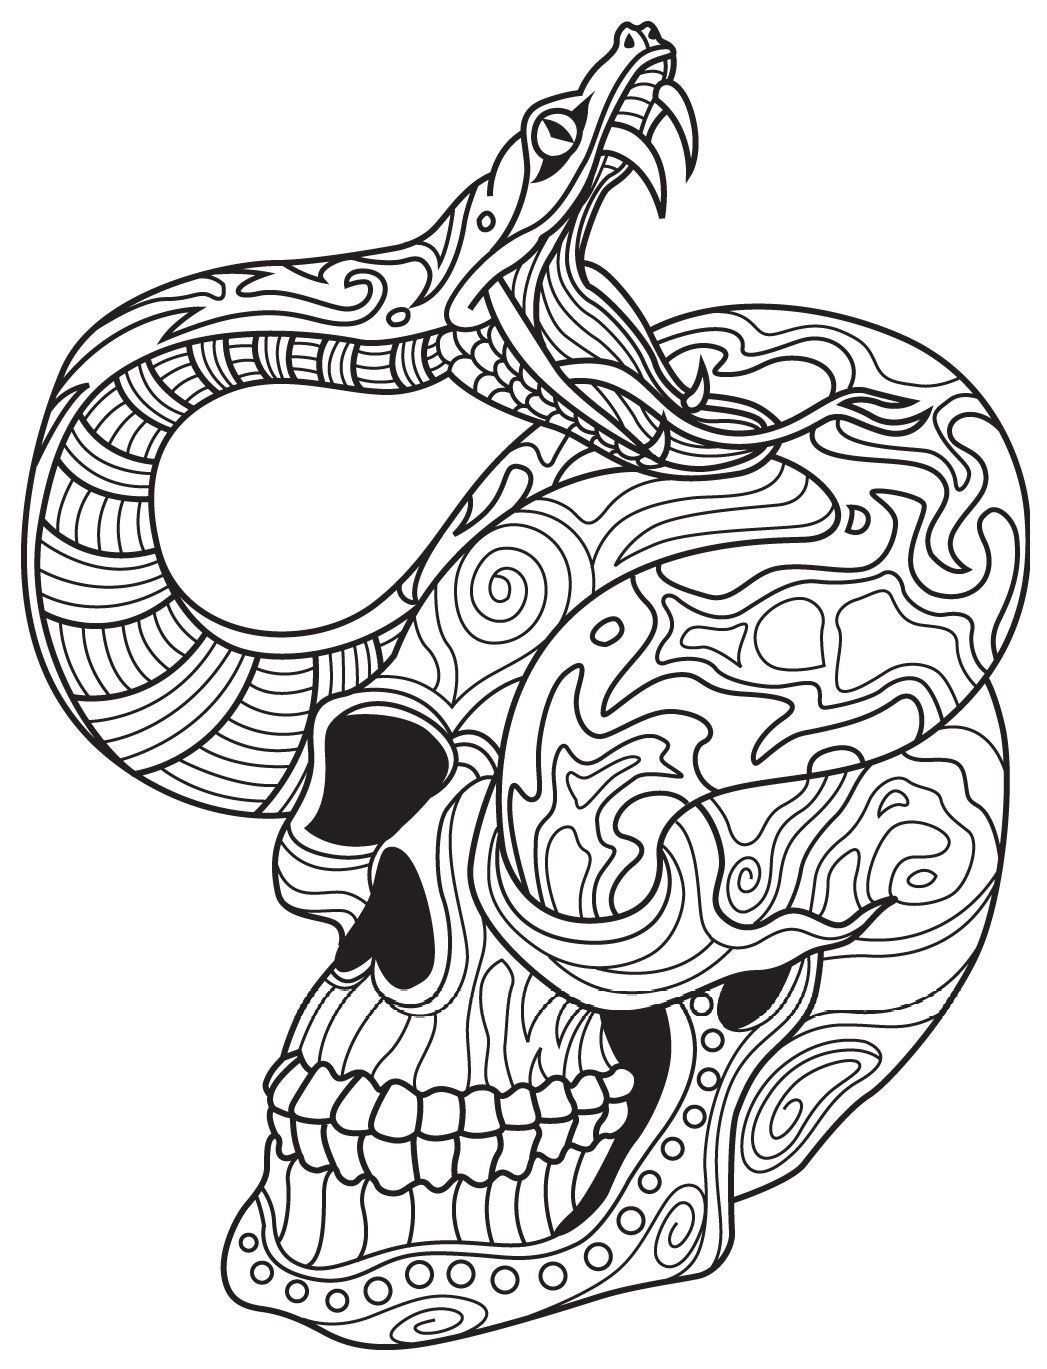 Best ideas about Snake Coloring Pages For Adults . Save or Pin Snake and Skull Now.